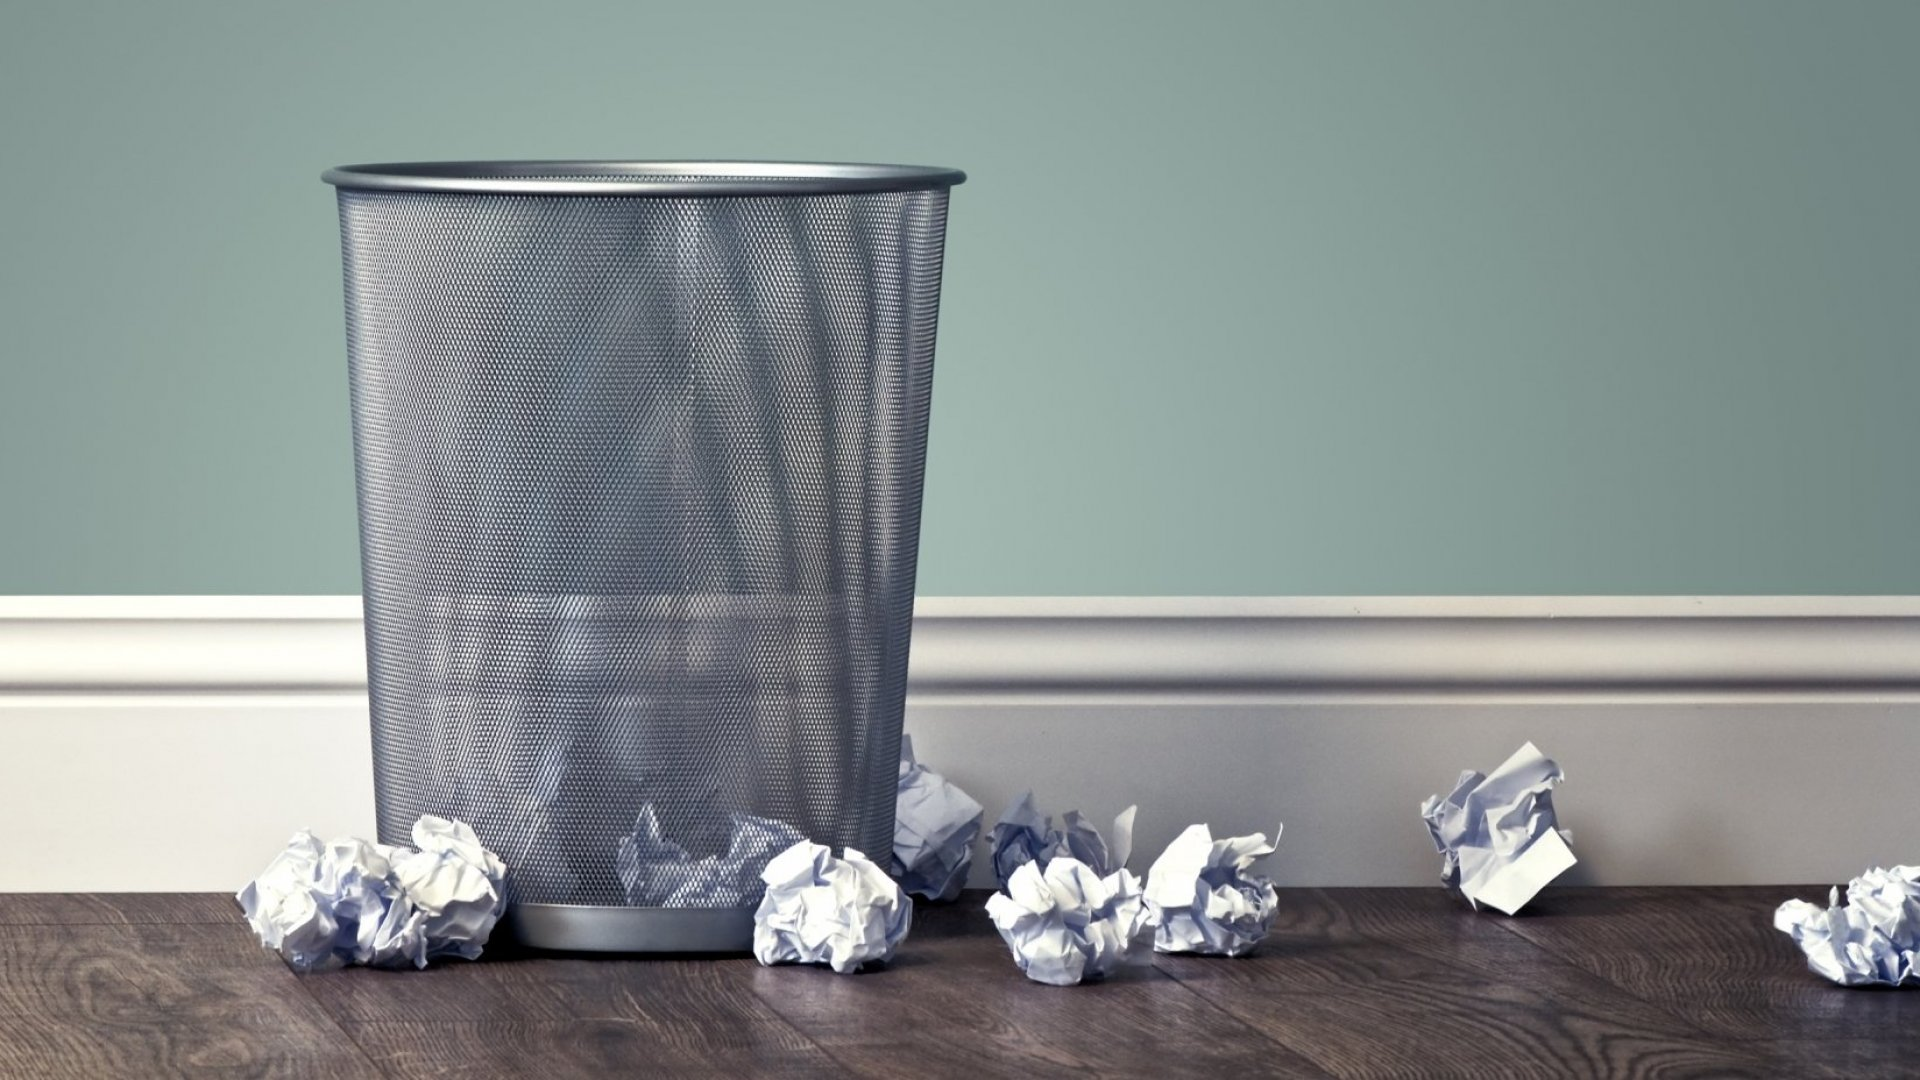 Most Entrepreneurs Fail at Some Point. Here's How to Bounce Back Without Missing a Beat